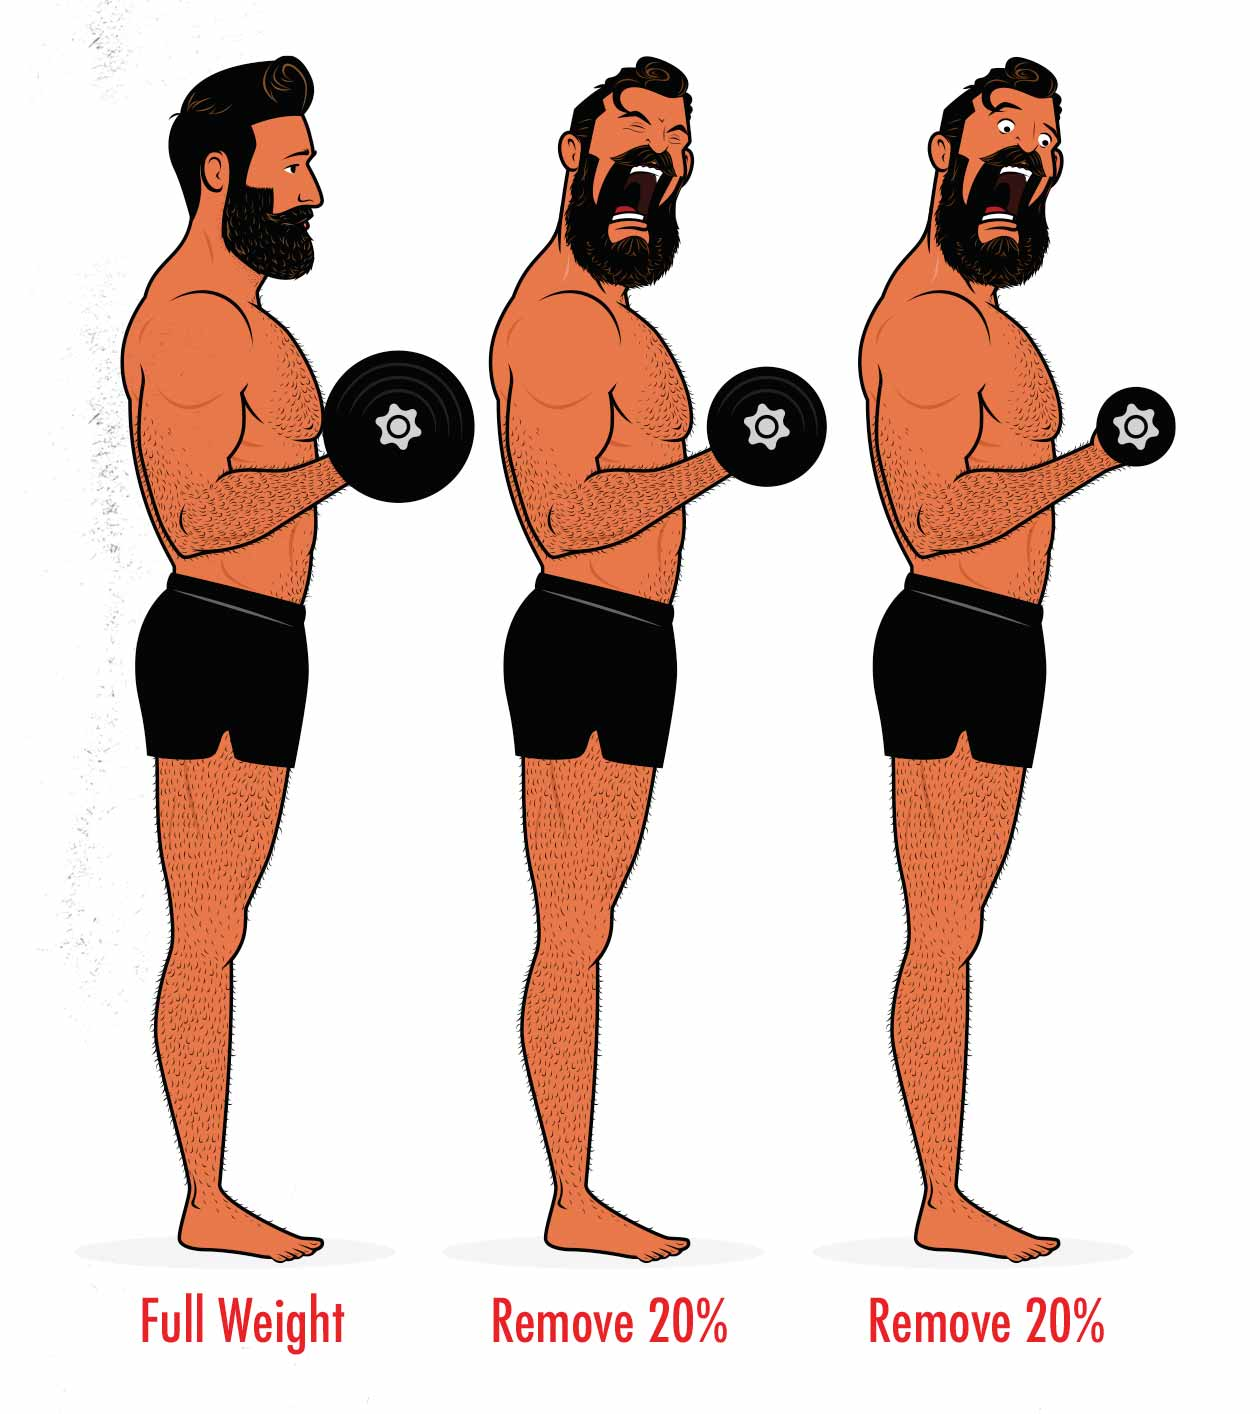 Illustration of a man showing how to do drop sets.